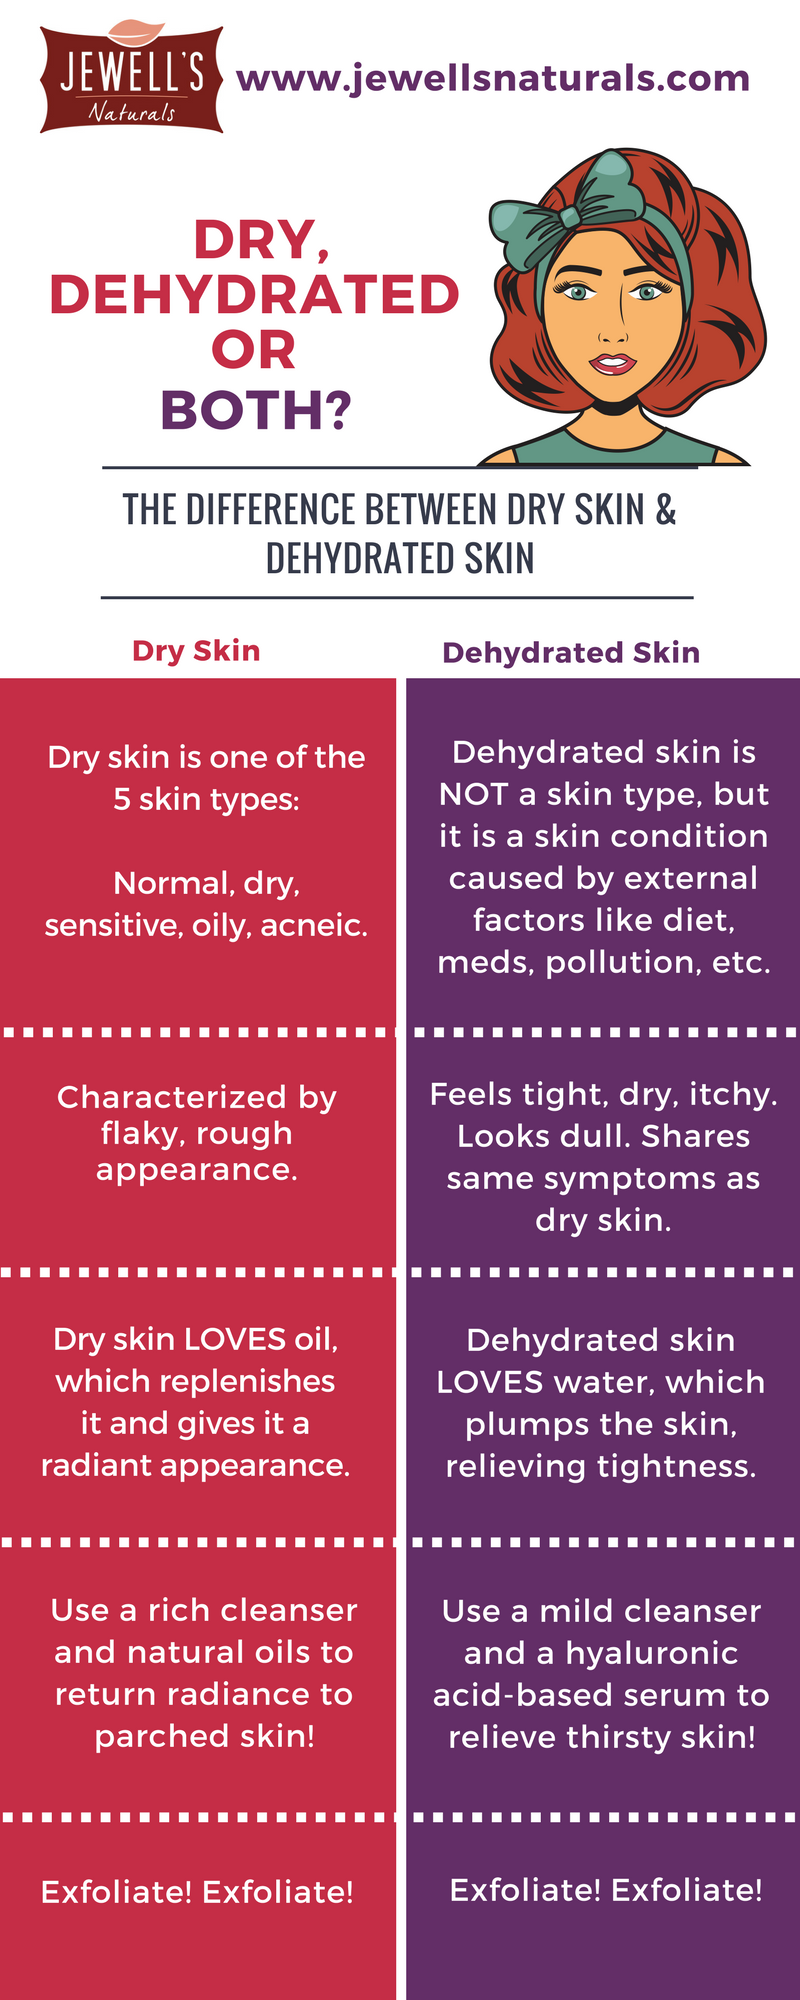 Dry, Dehydrated or Both Infographic